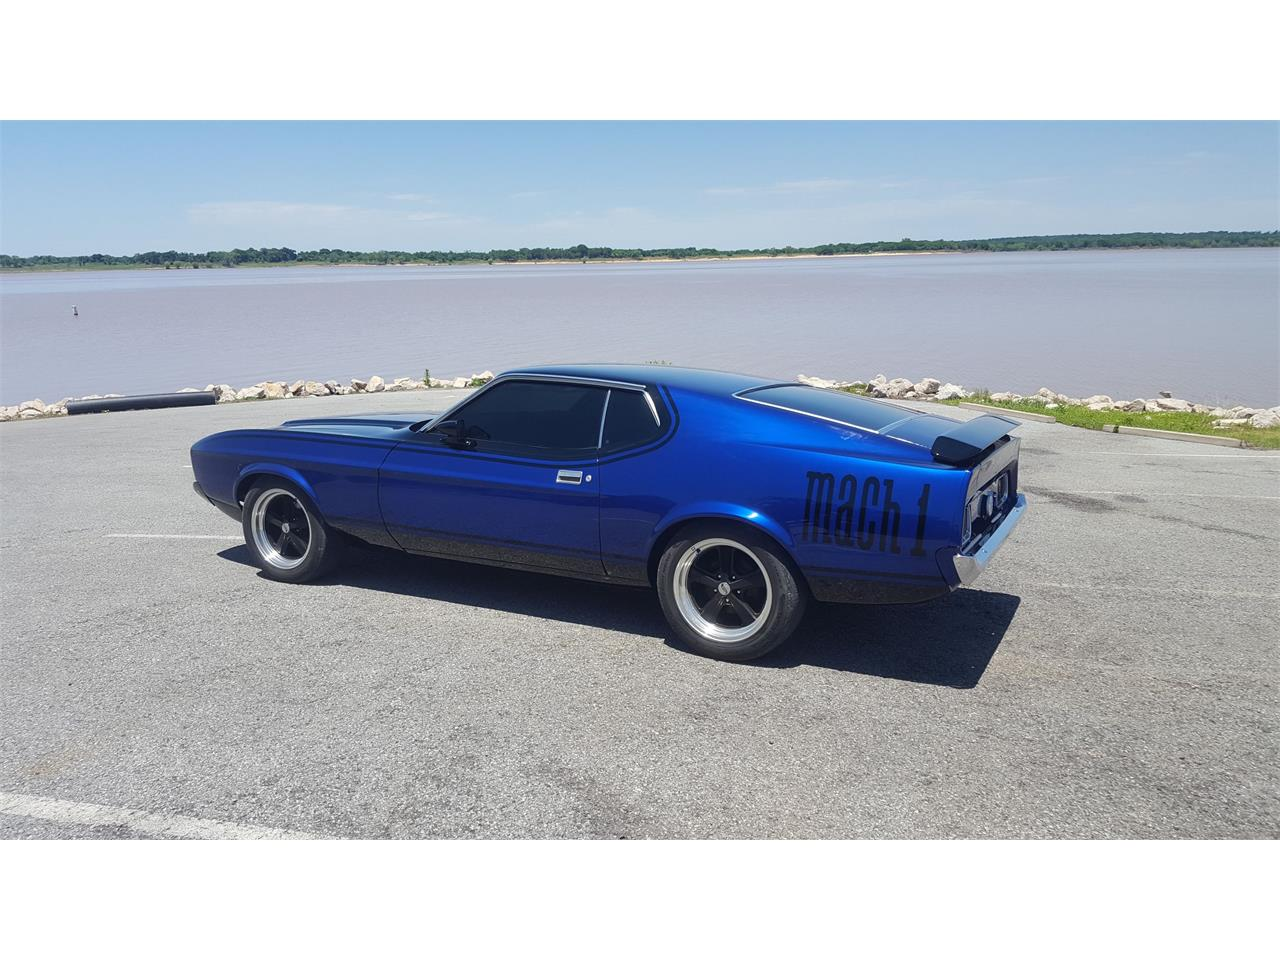 Large Picture of '73 Mustang Mach 1 - $45,000.00 Offered by a Private Seller - LBYV